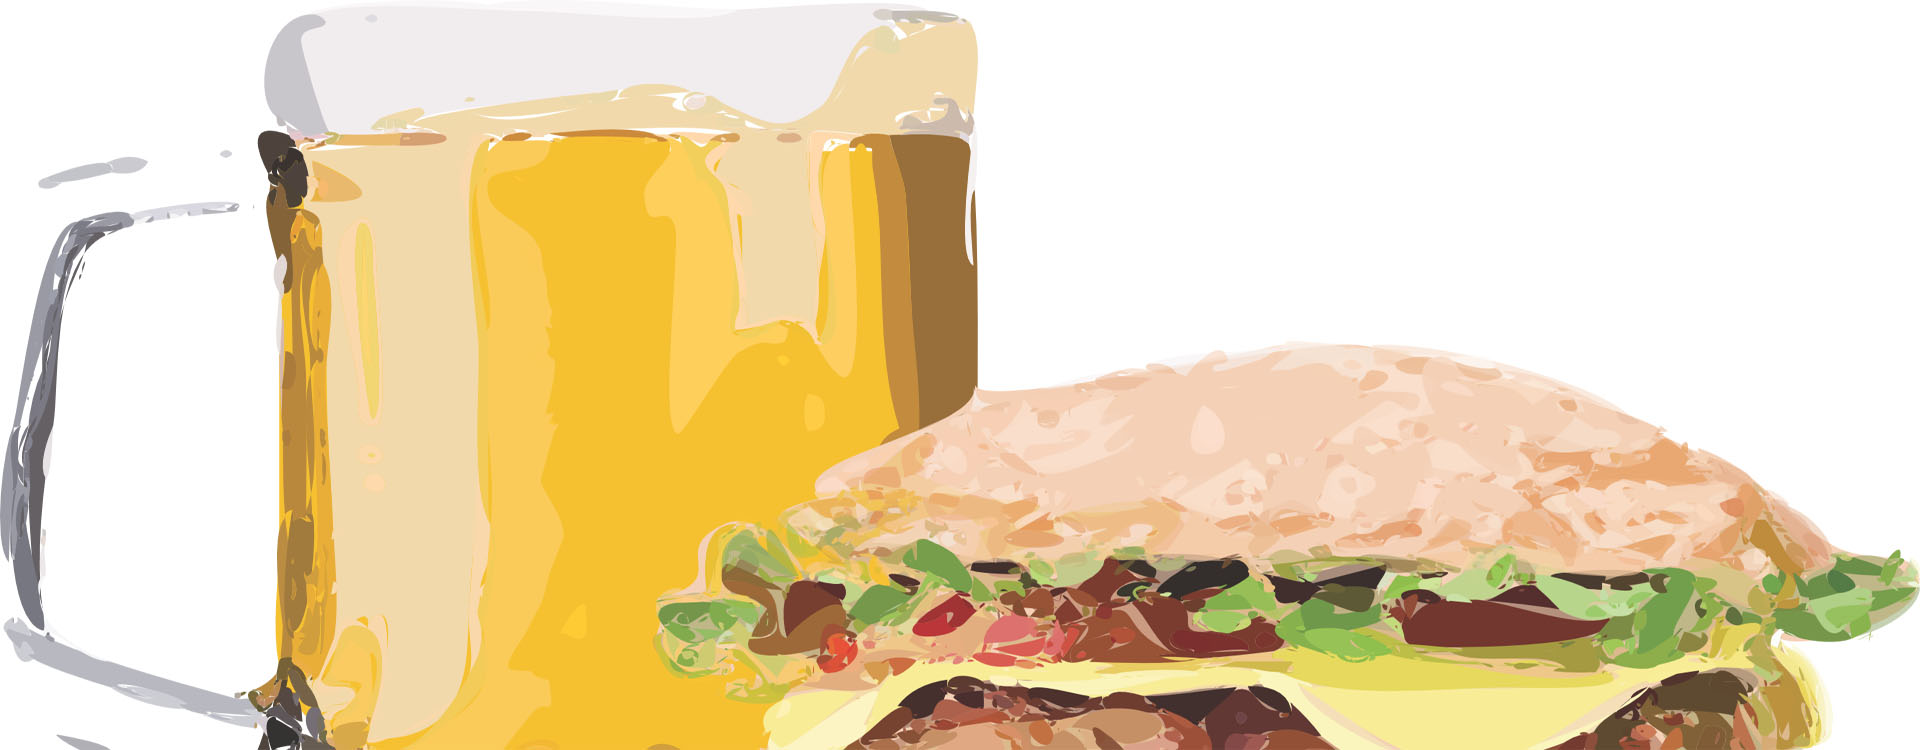 Gout - Beer & Meat Banner Picture